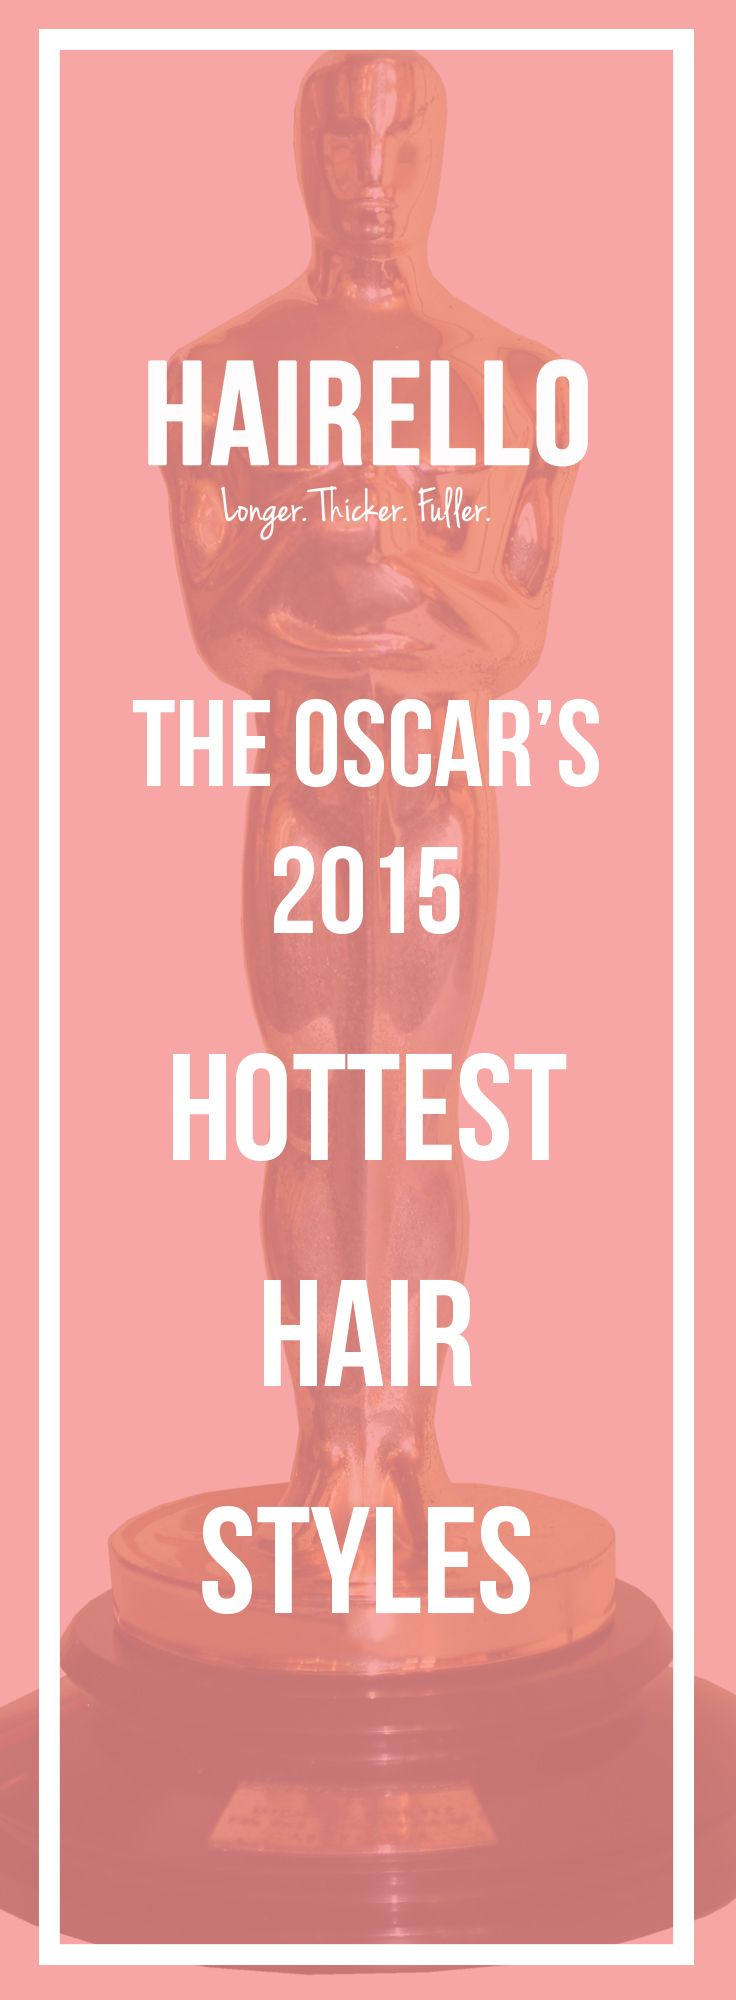 Find out who we thought made the best style choices at this years Oscar's on the Hairello Blog!